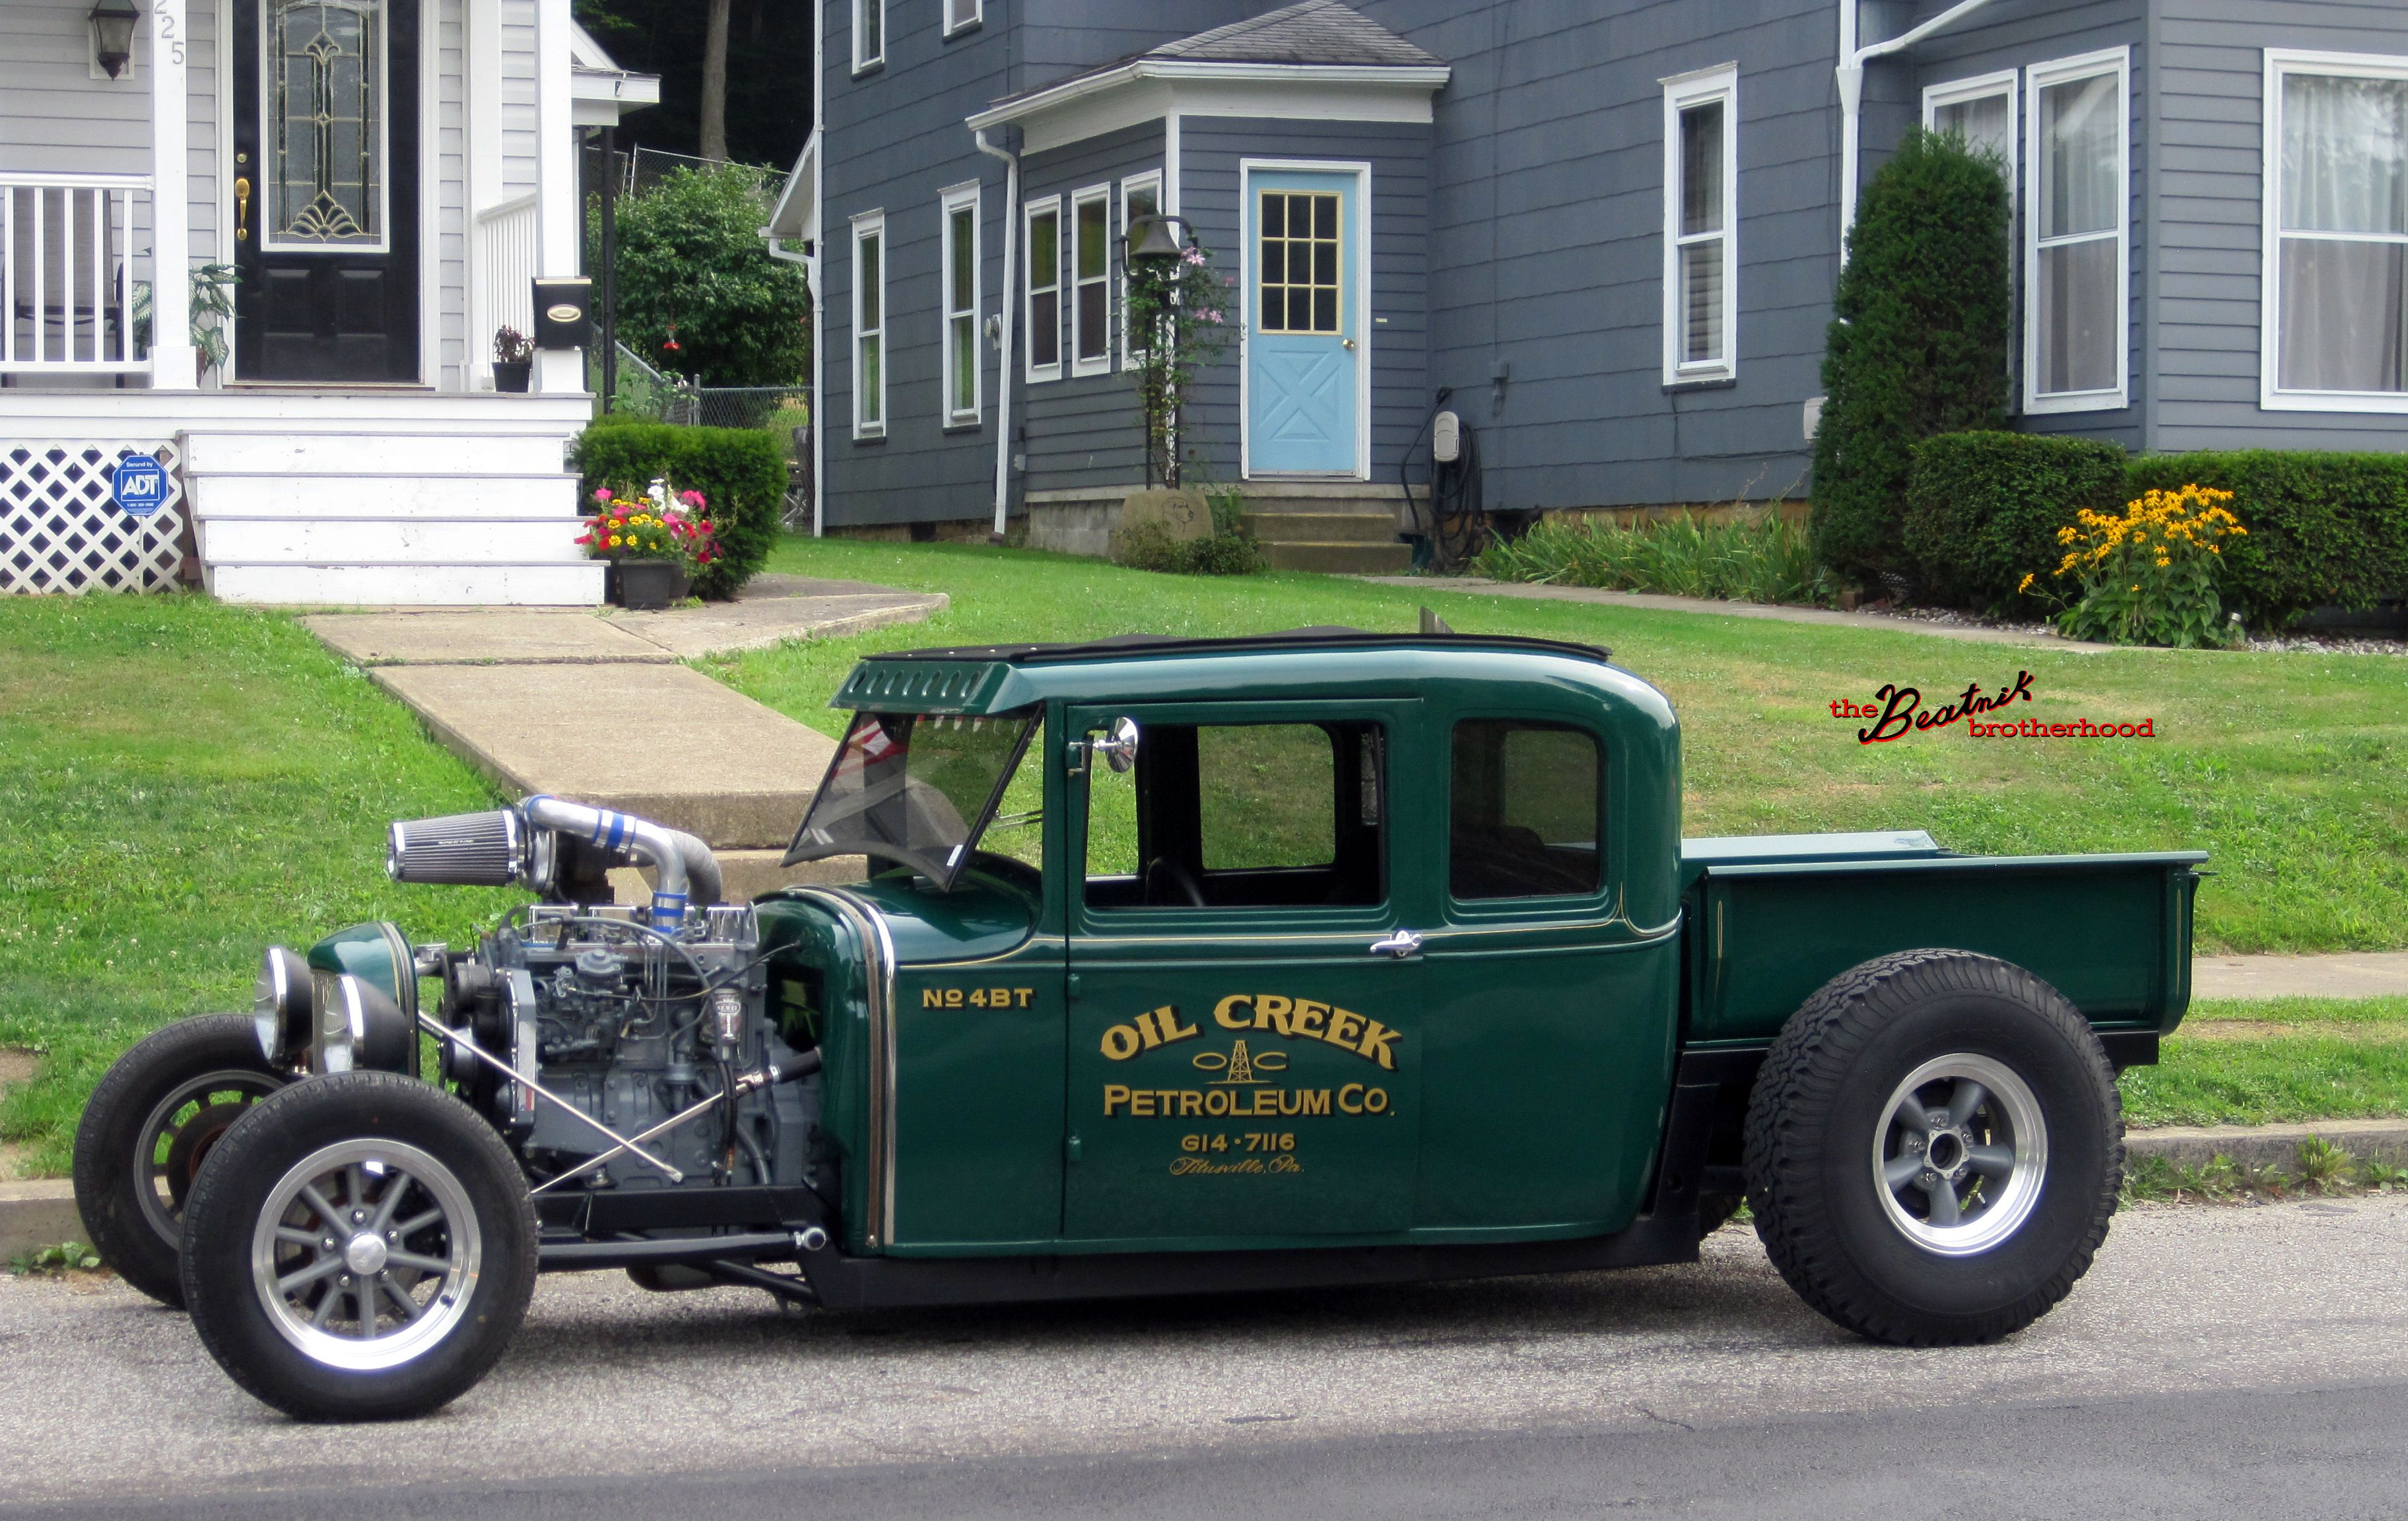 Old Hot Rods | Cummins Diesel Hot Rod – Turbo Ford Model A | The ...